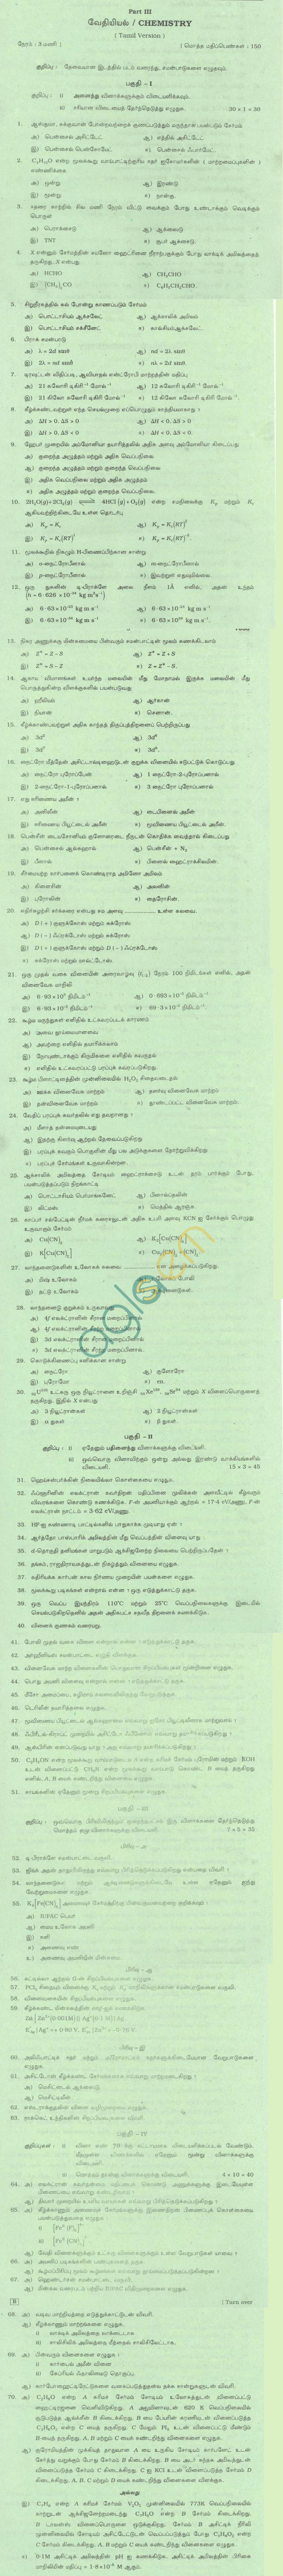 TN Board Higher Secondary (Plus 2)ChemistryQuestion PapersMarch 2011